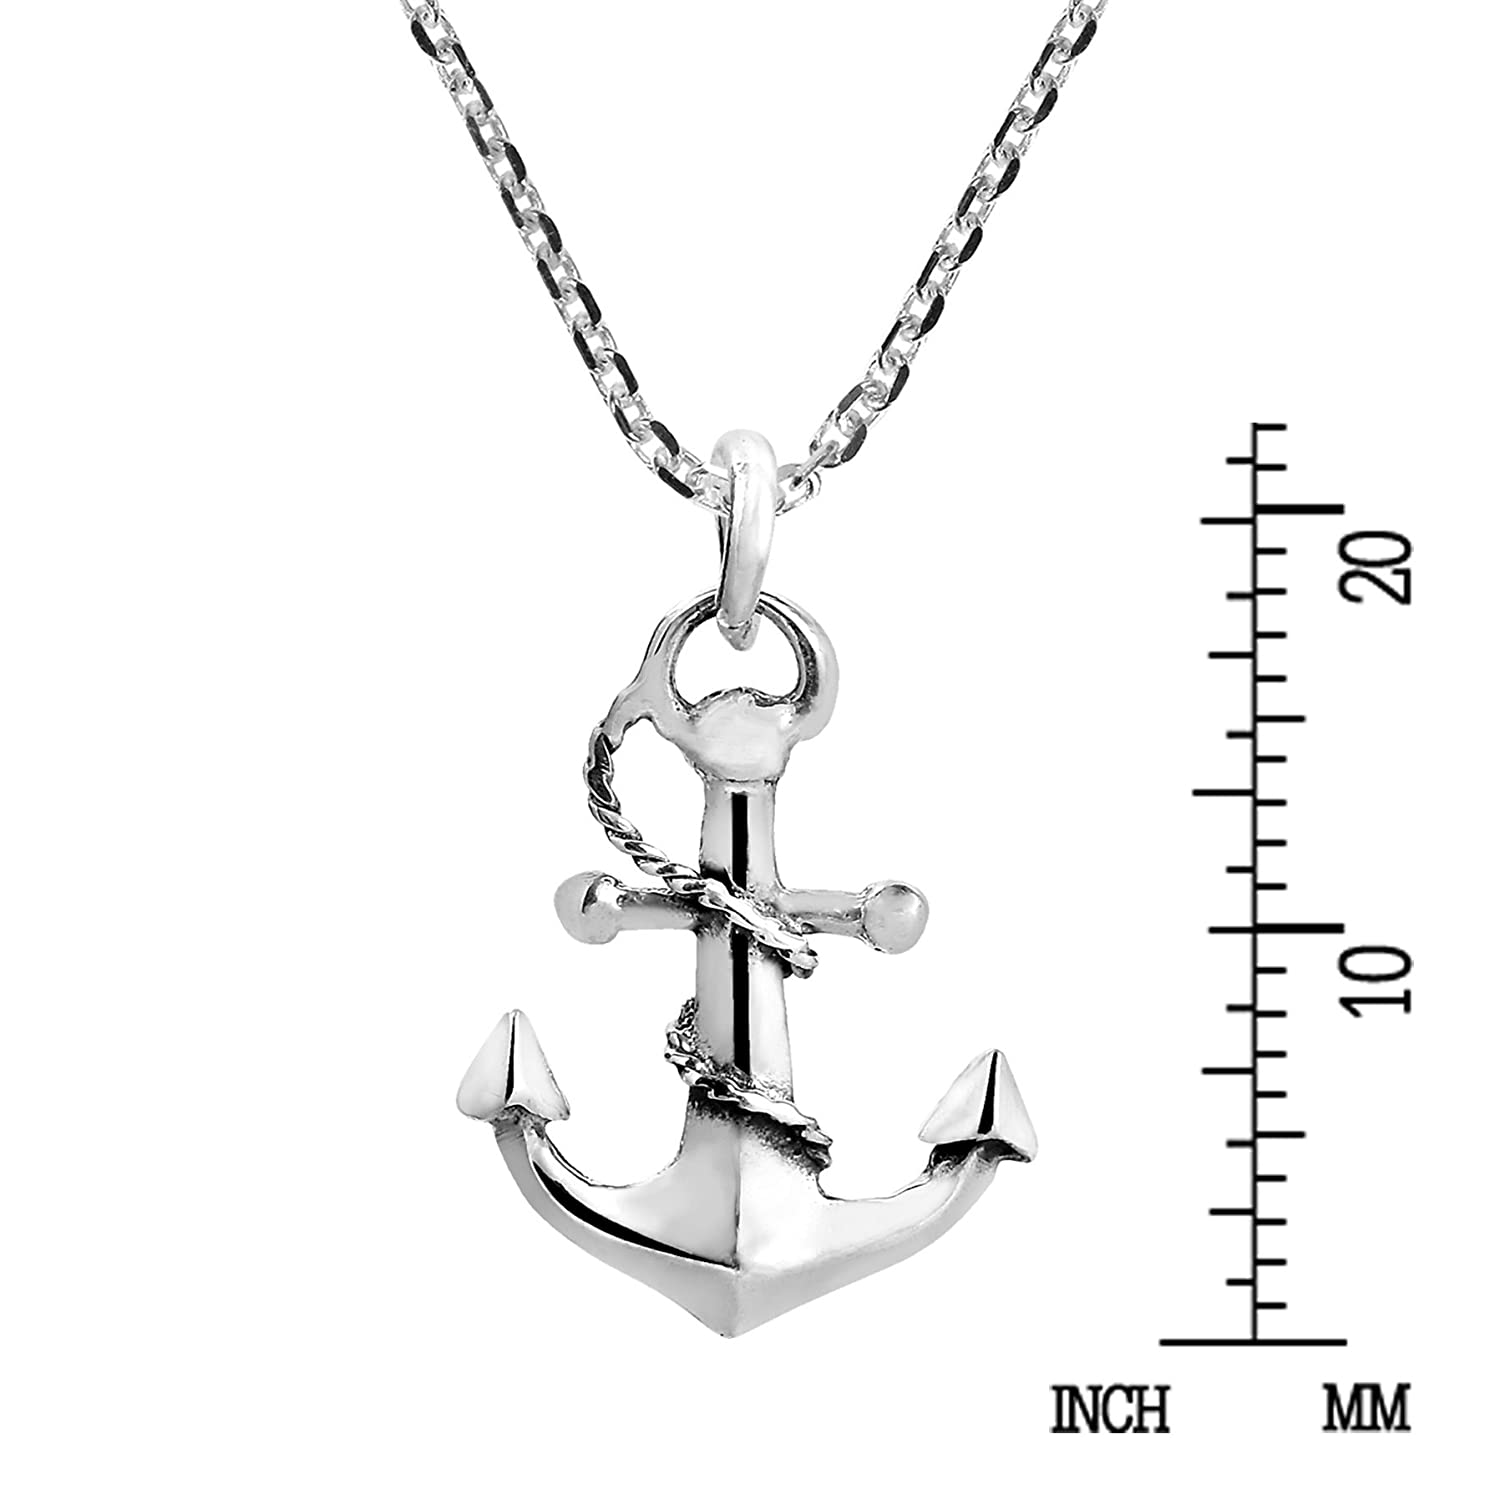 dbac1348e3af Amazon.com  AeraVida Nautical Rope and Anchor .925 Sterling Silver Necklace   Jewelry